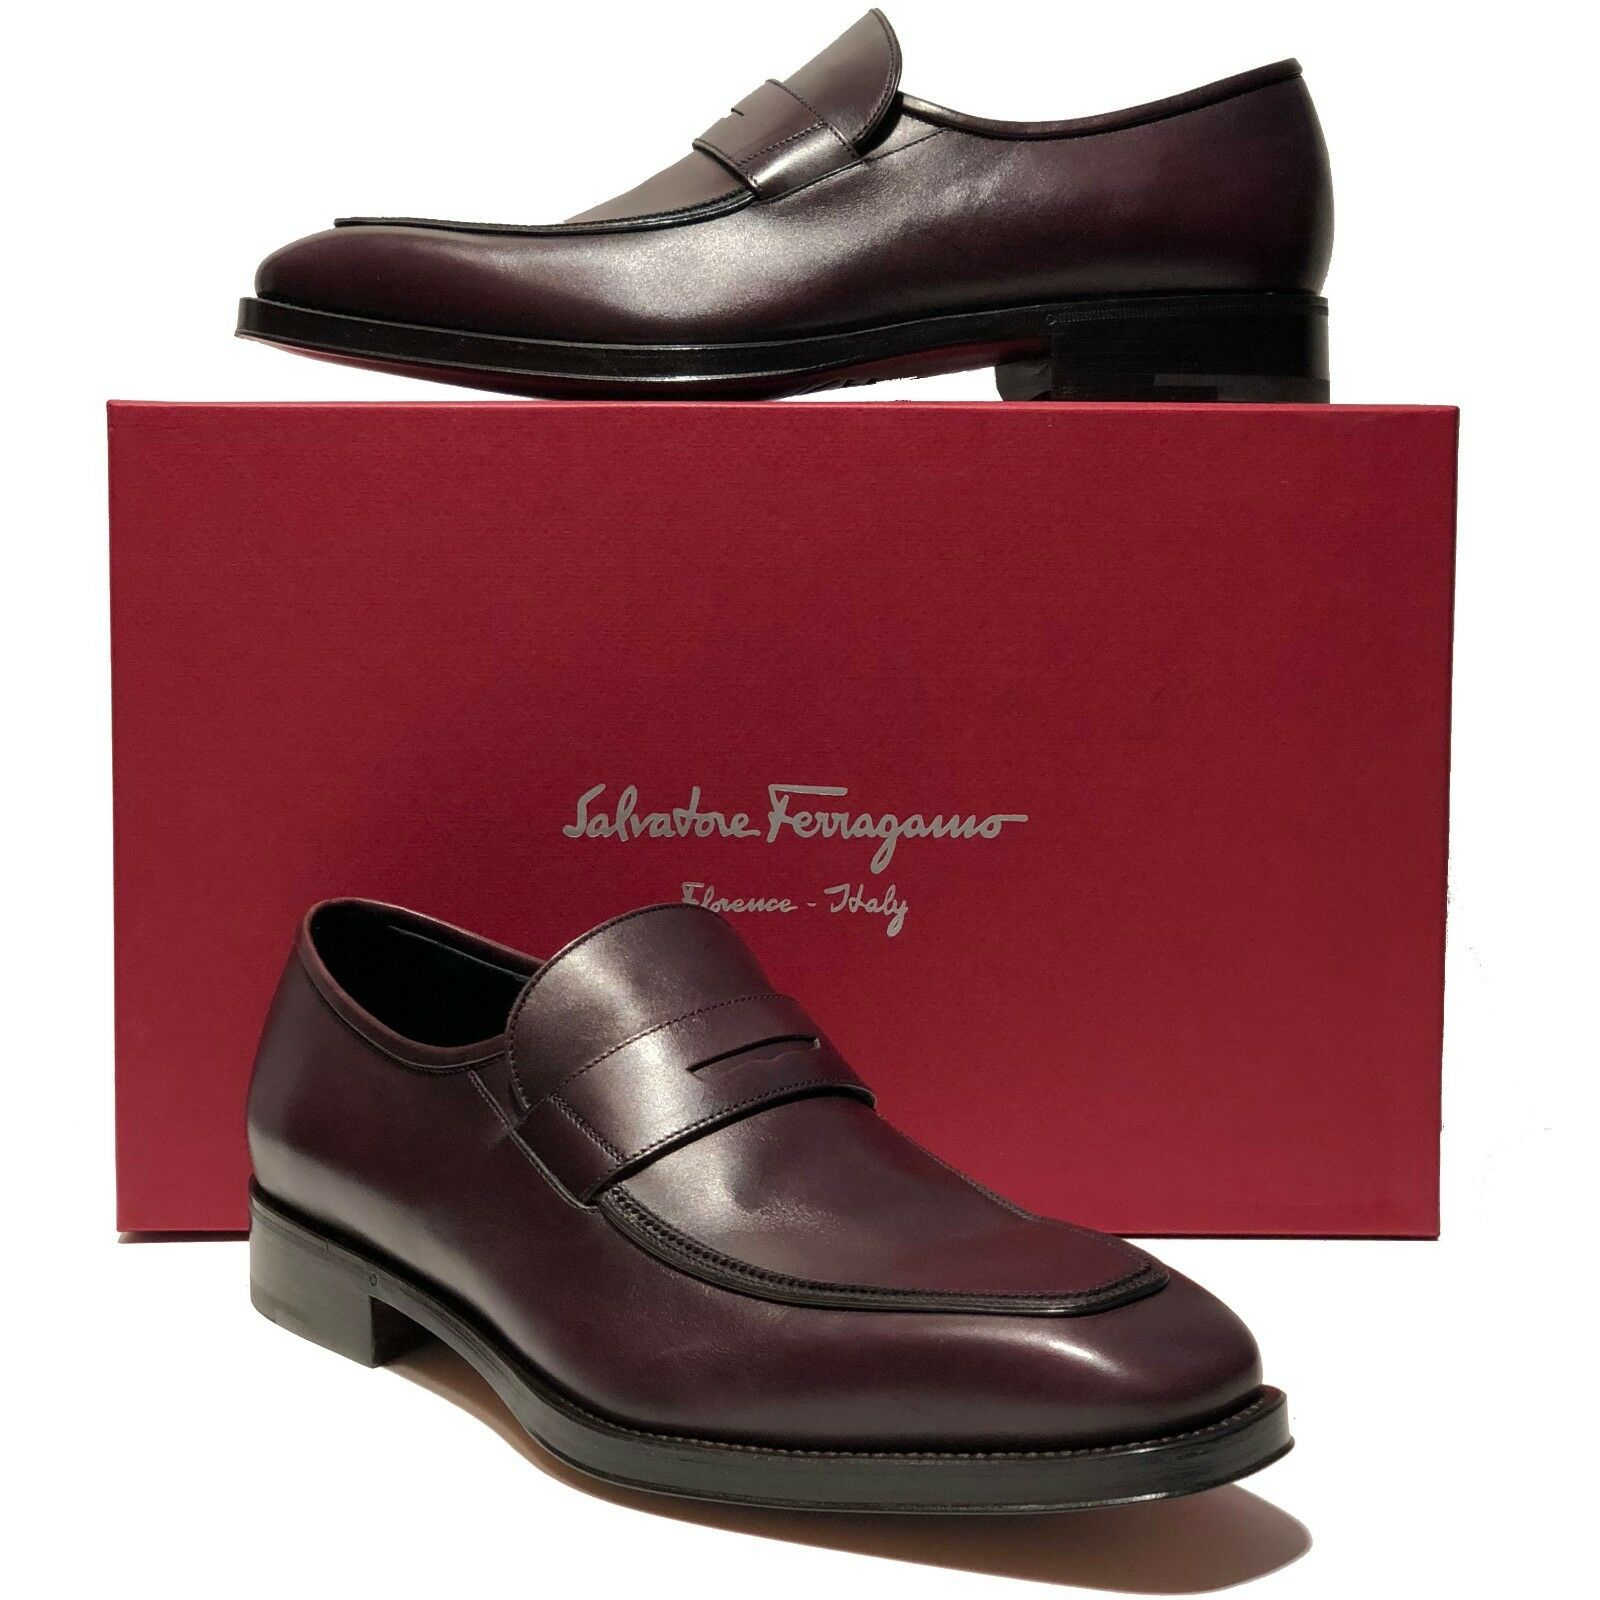 Ferragamo GIORGIO Brown Leather Fashion Penny Dress Loafers Mens Welted Moccasin